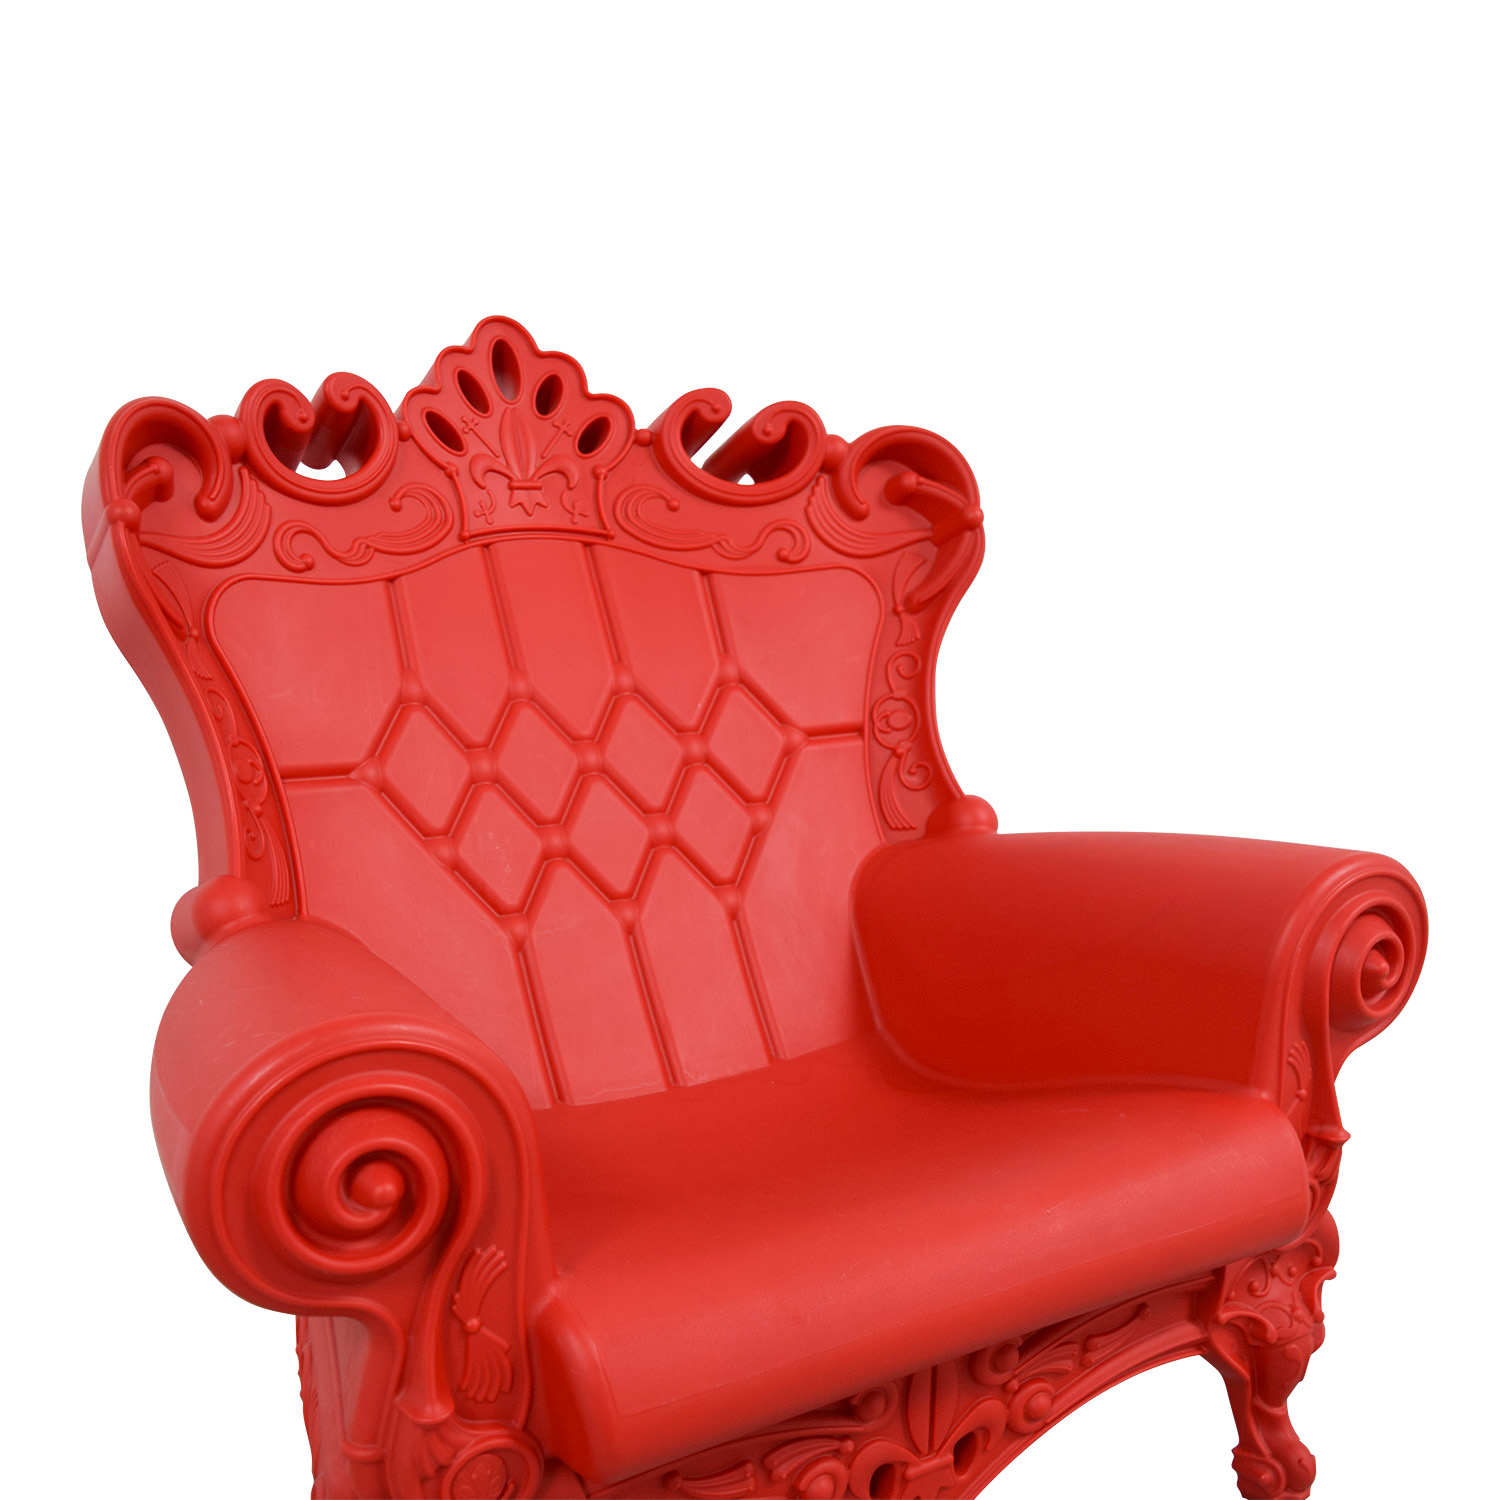 shop Linvin Linvin Queen of Love Chair Red Passion online